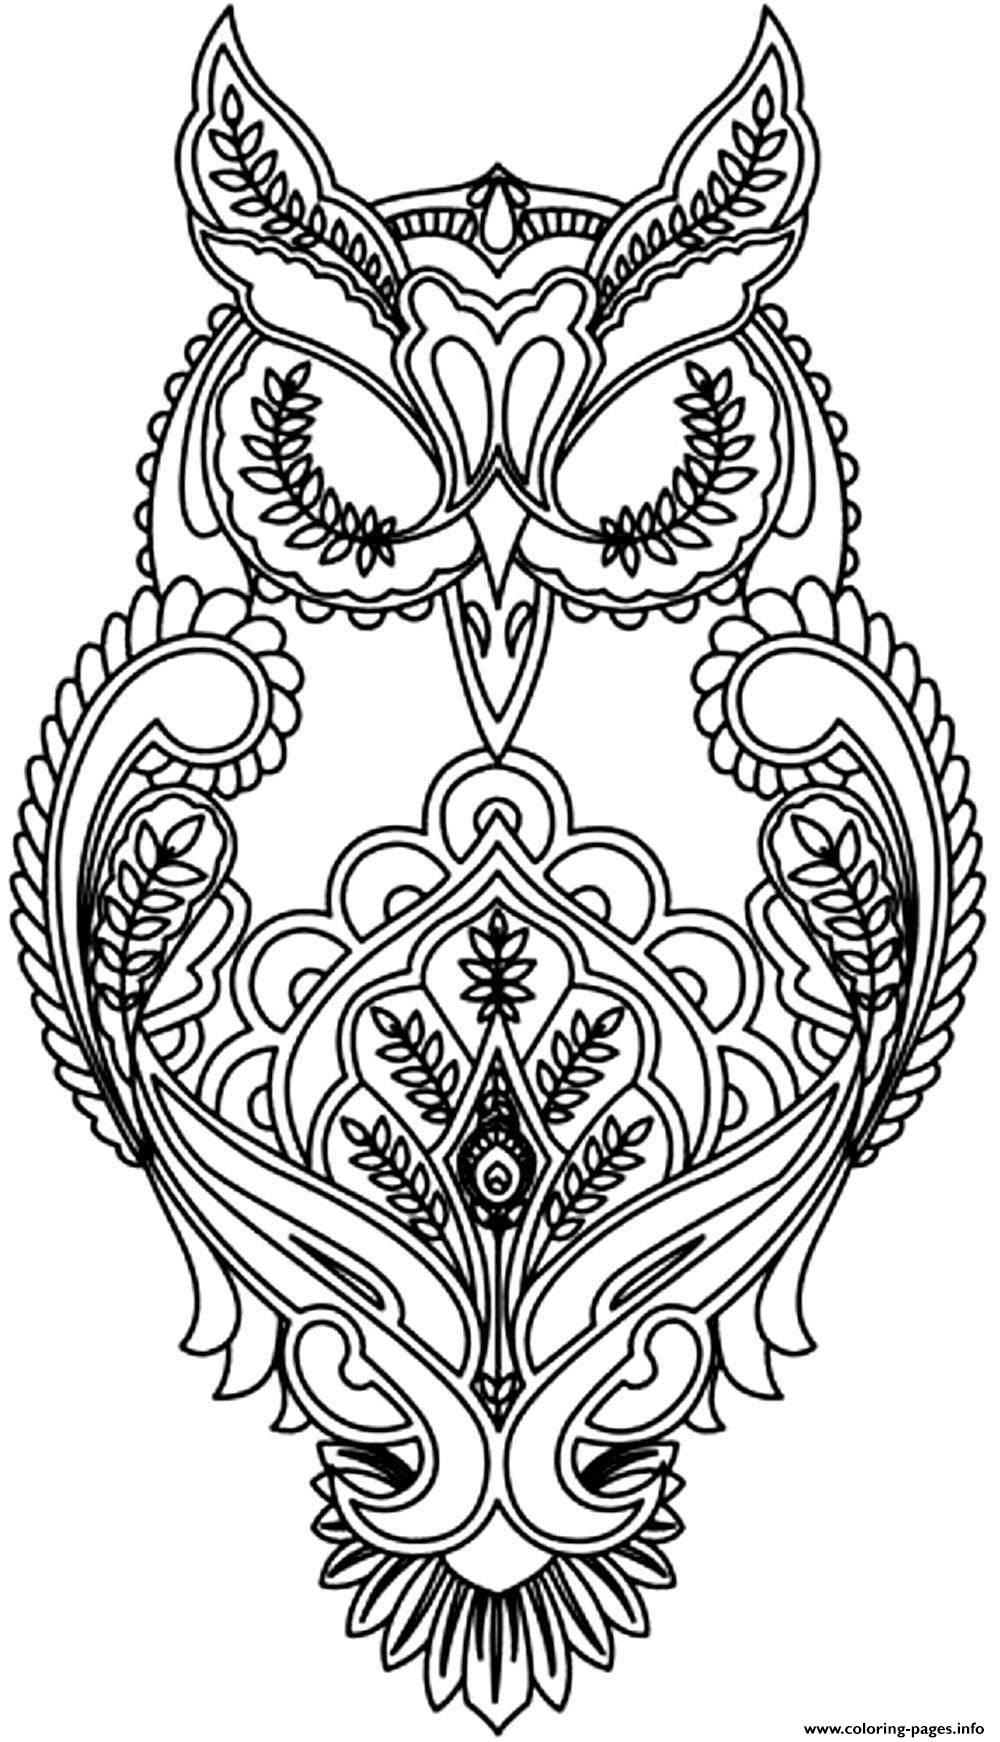 adult difficult owl coloring pages - Owl Coloring